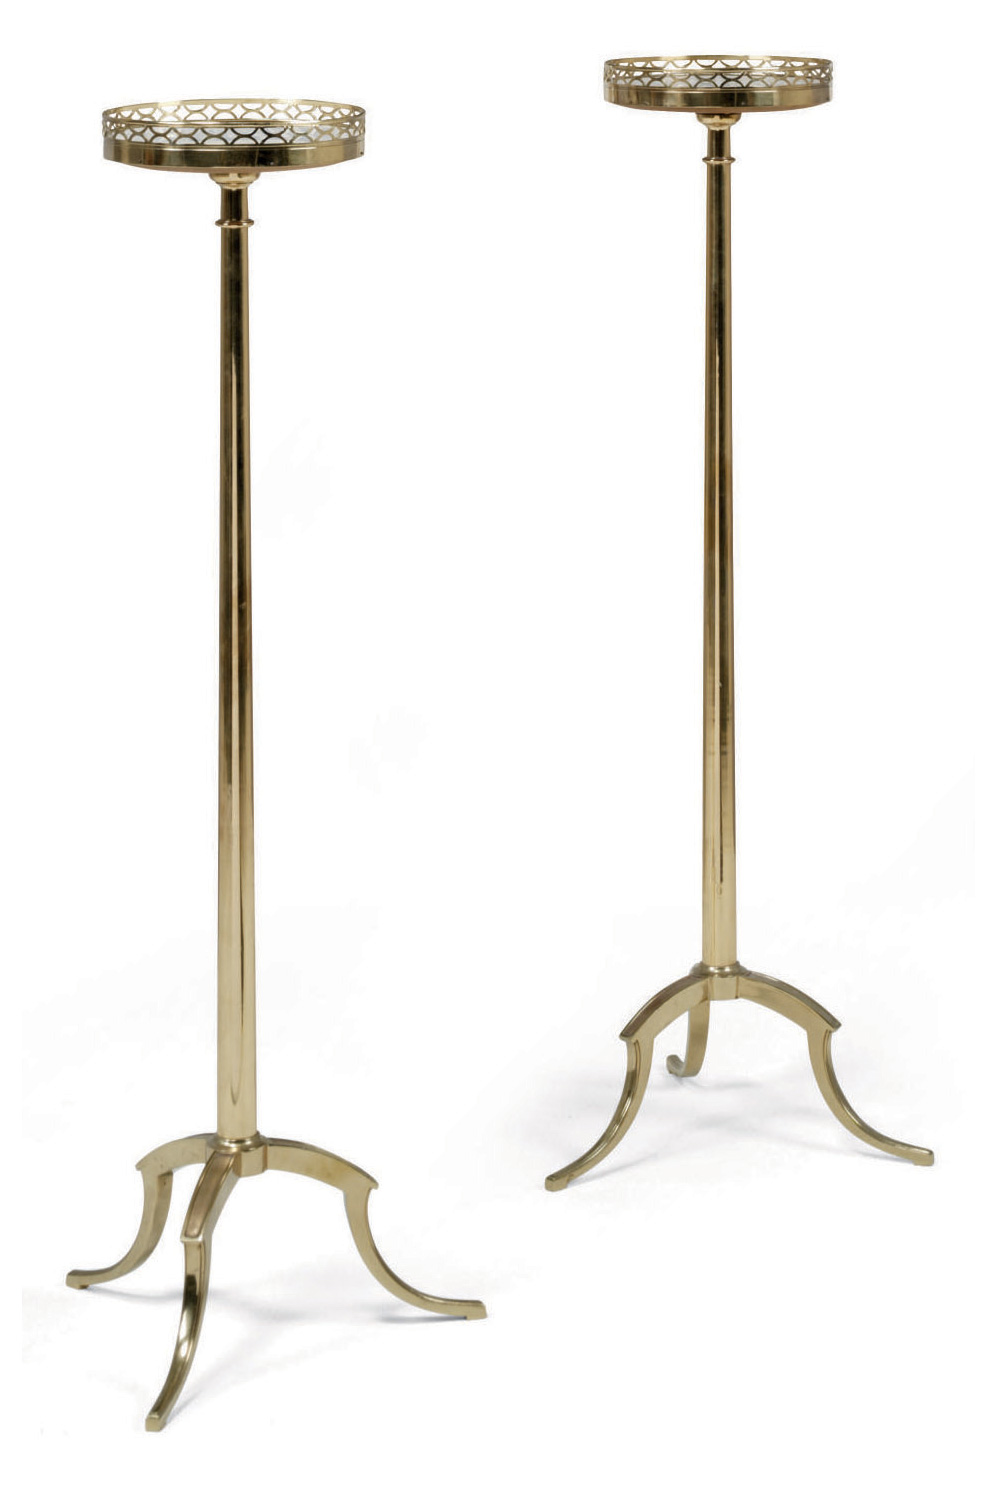 A PAIR OF FRENCH BRASS TORCHERES